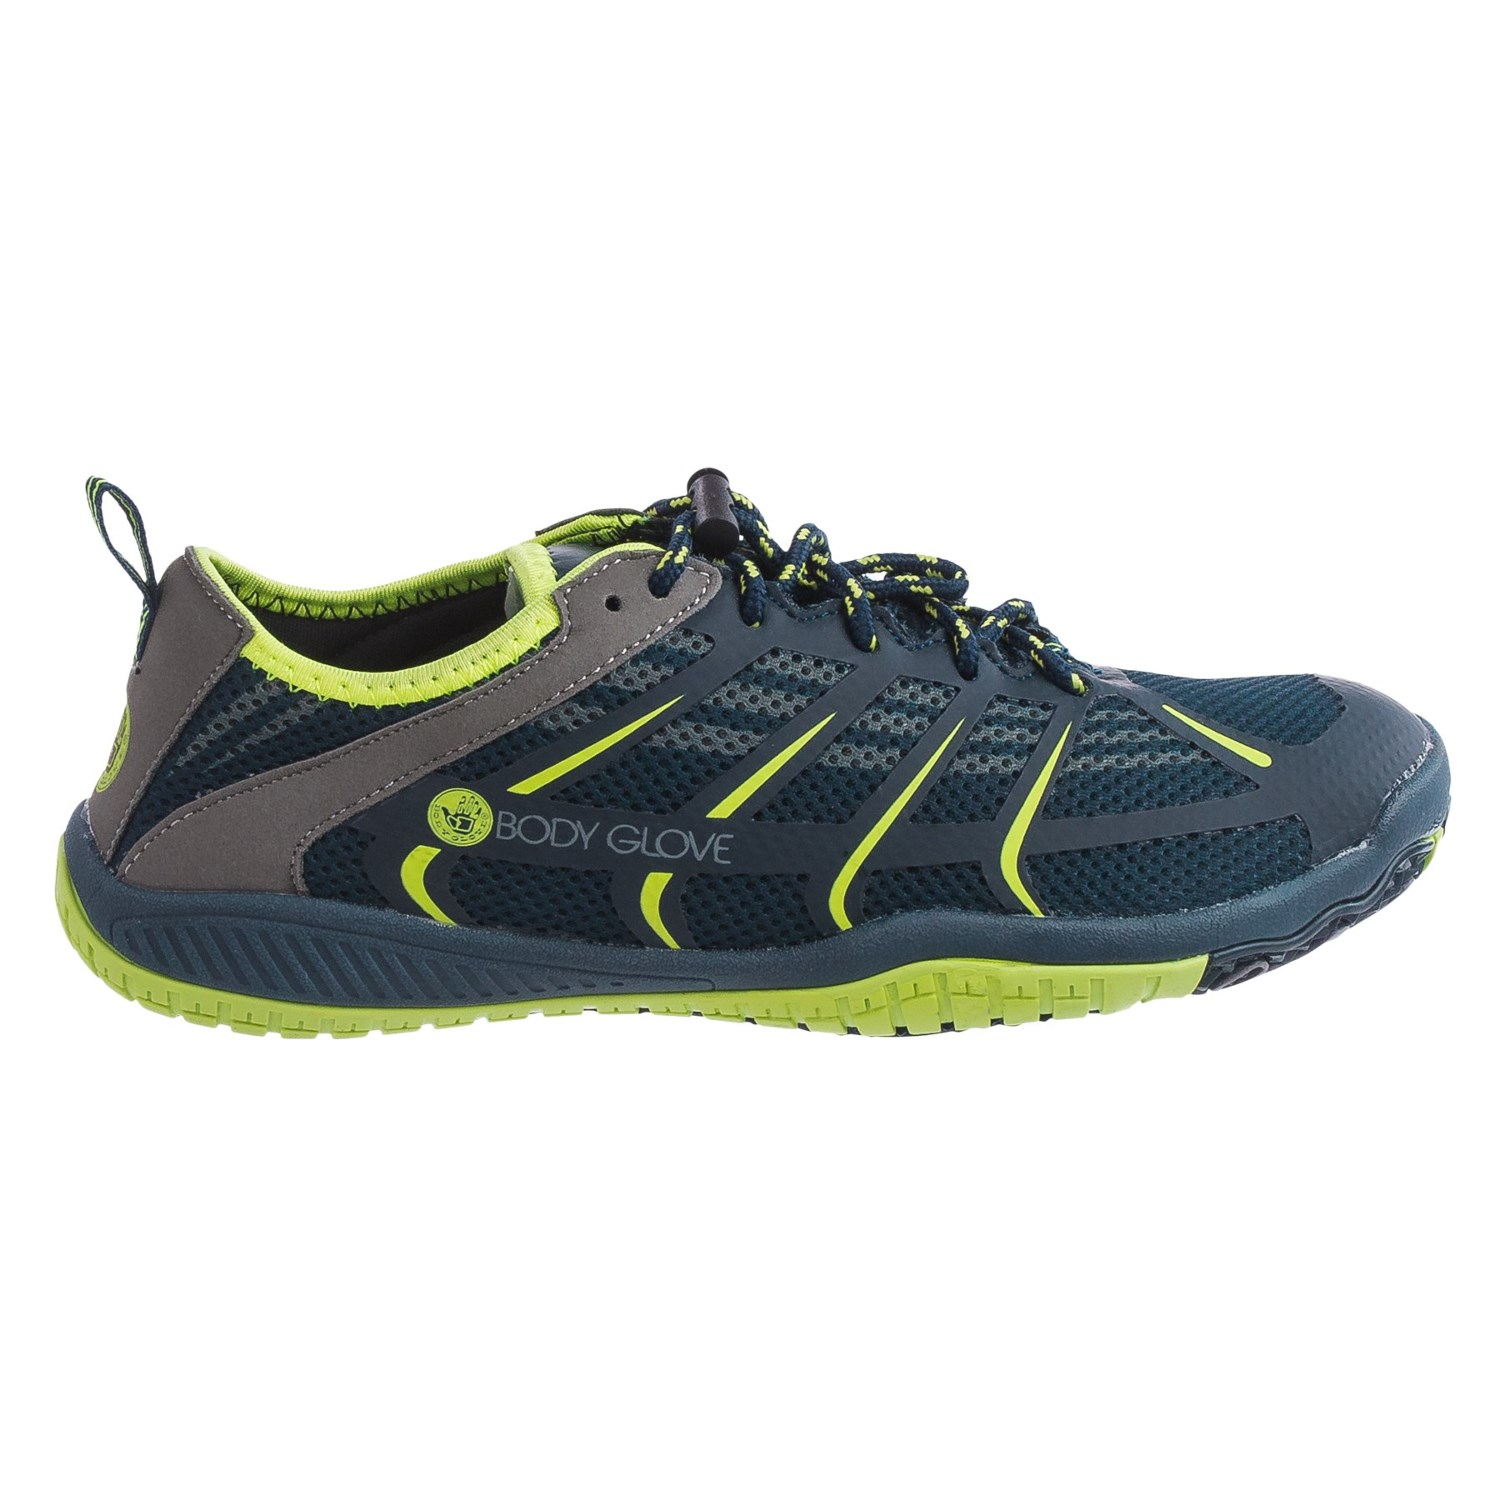 Body Glove Dynamo Rapid Men's ... Water Shoes outlet with mastercard authentic cheap price cheap online shop cost cheap price cheap how much i1Q8HH